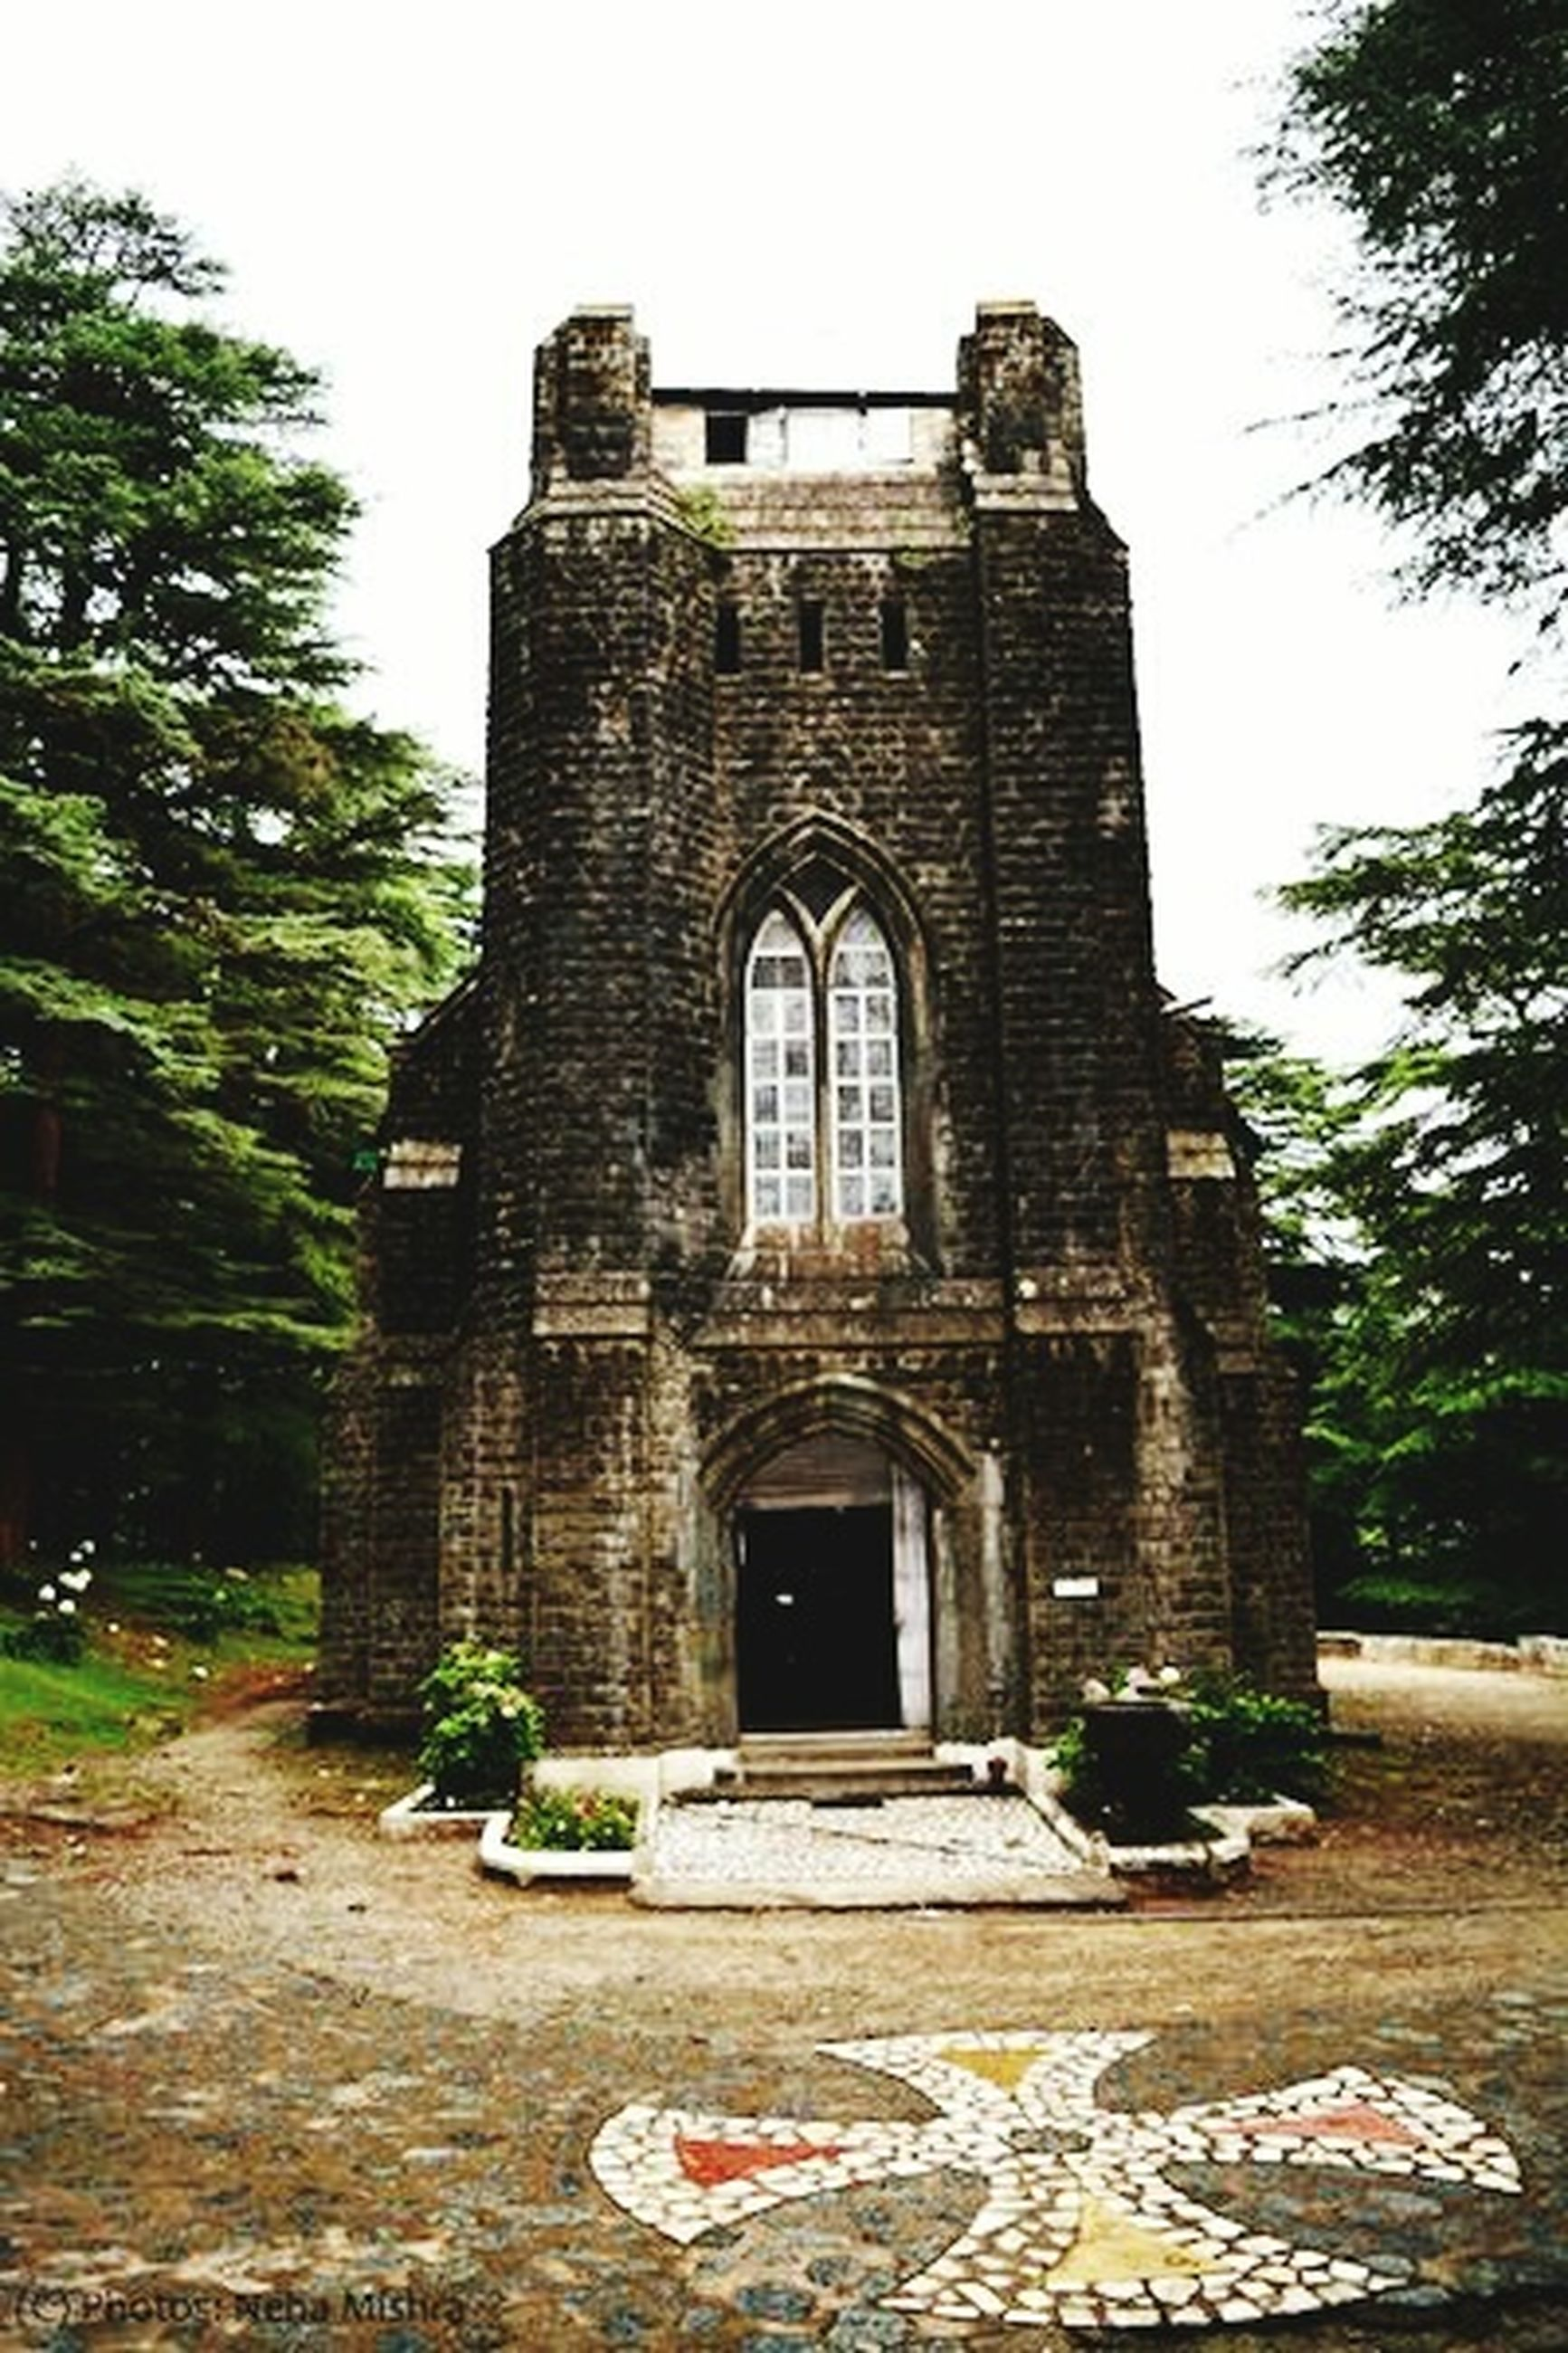 architecture, built structure, building exterior, tree, history, clear sky, place of worship, religion, entrance, low angle view, facade, old, spirituality, arch, church, day, sky, steps, outdoors